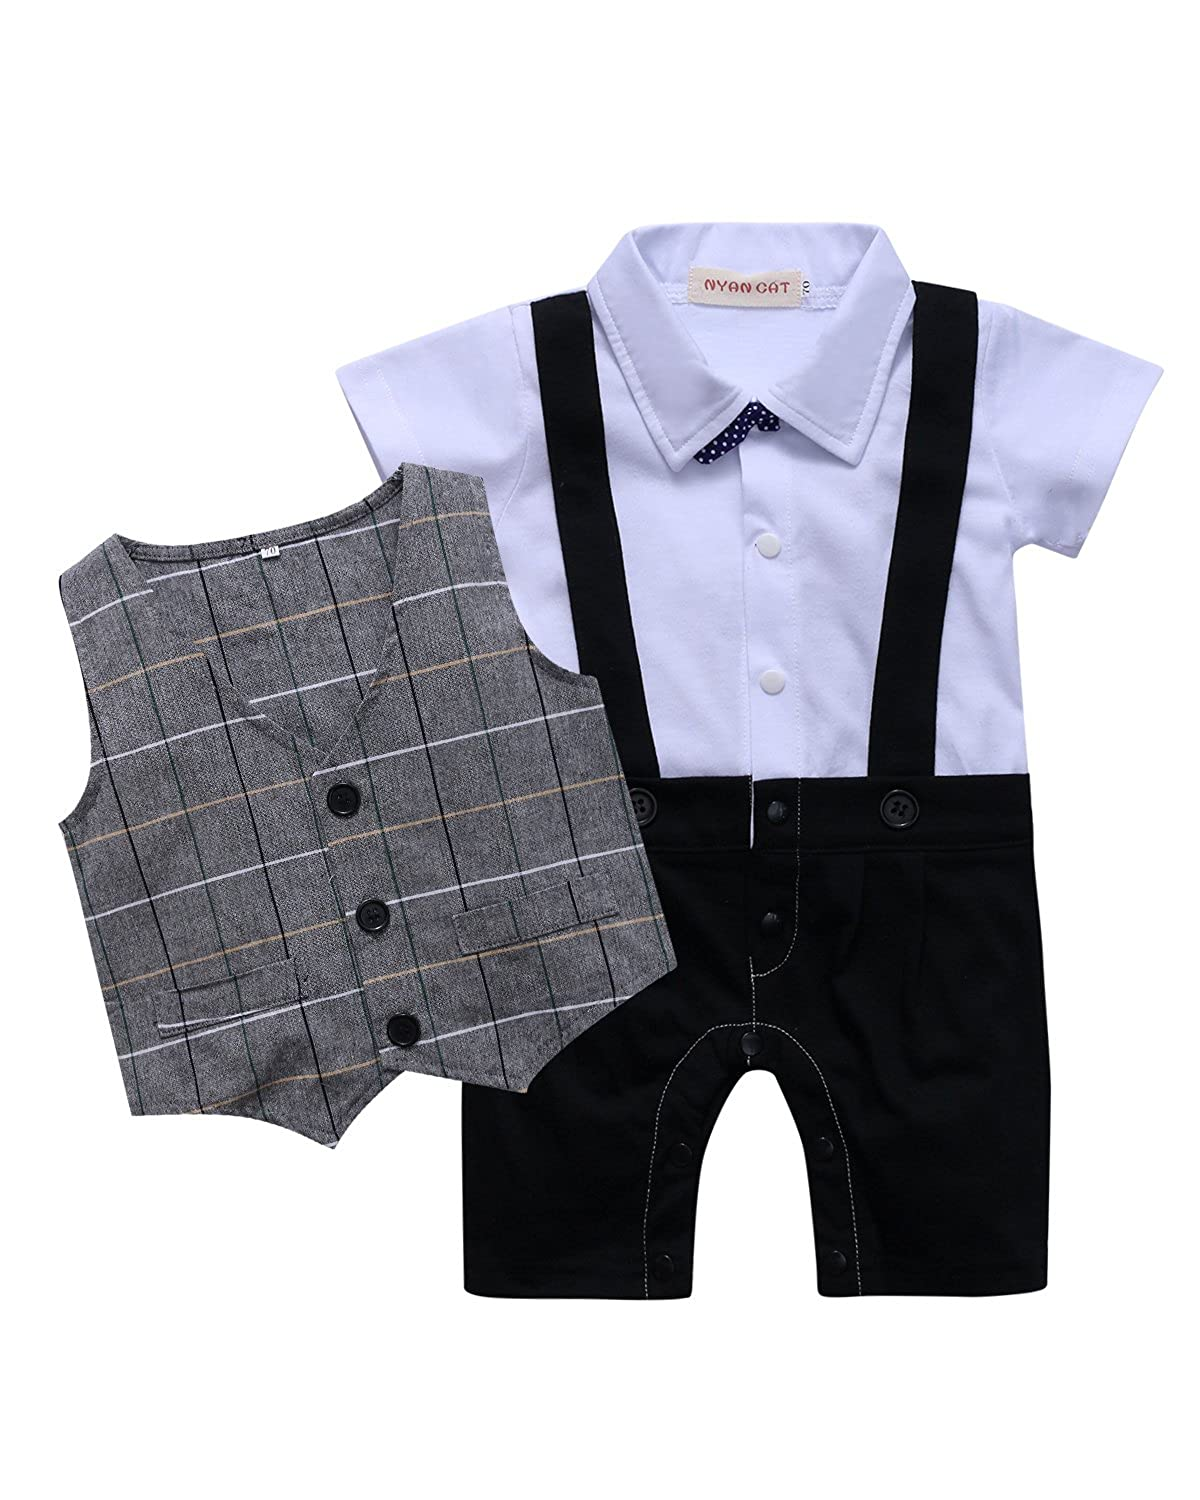 Kidsform Baby Boys Suit Party Outfits Gentleman Romper Short Sleeve Clothes with Bow Tie Bodysuit Jumpsuit